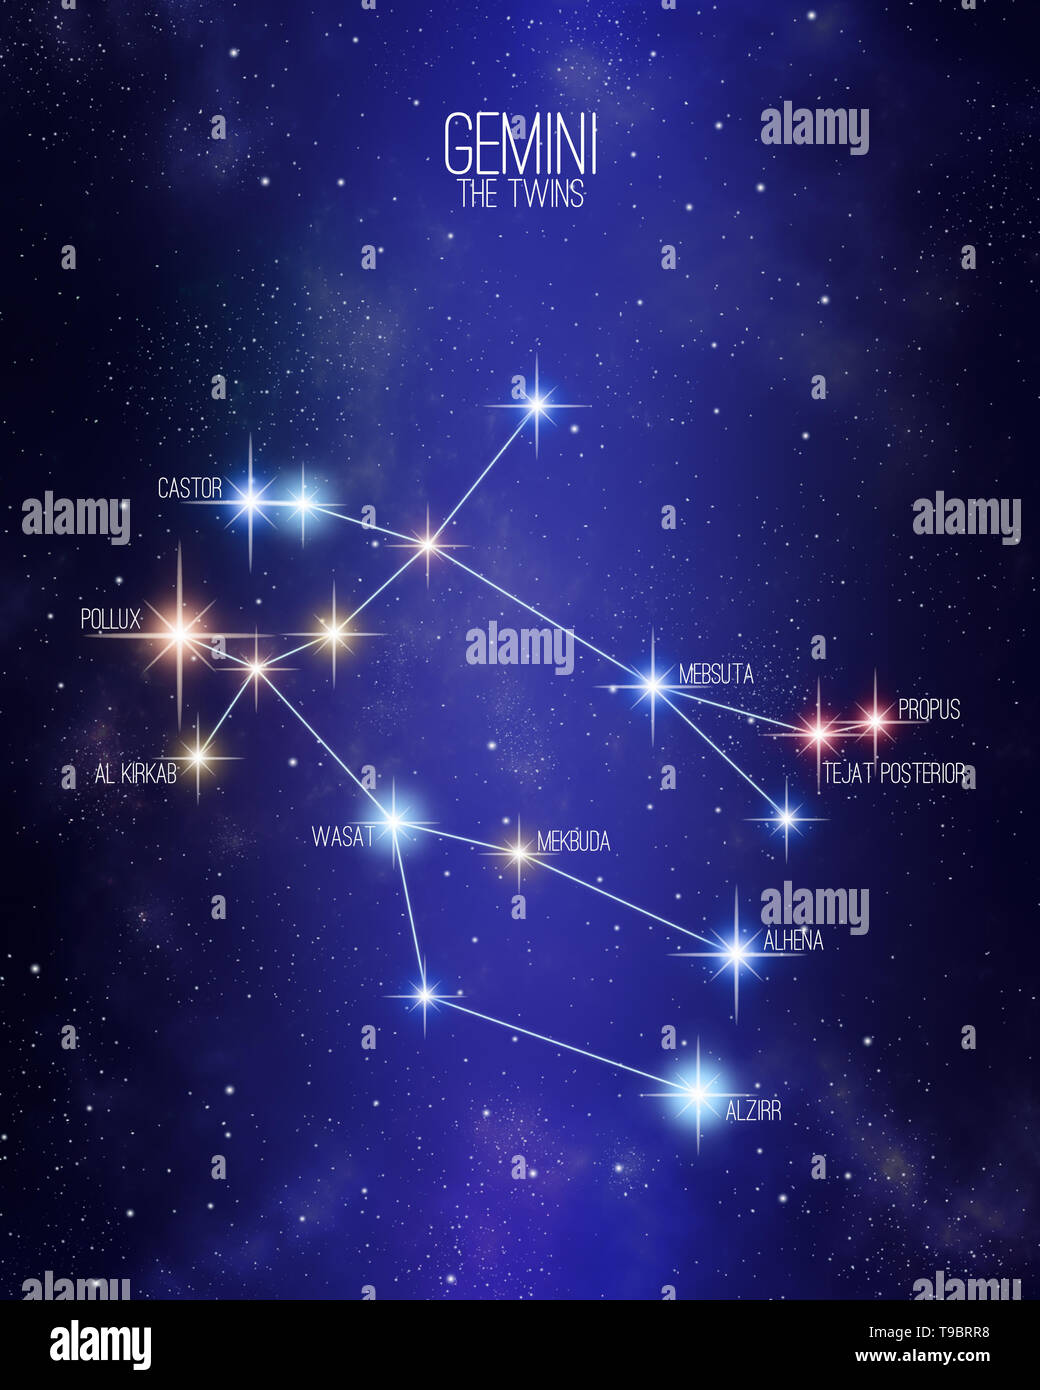 Gemini The Twins Zodiac Constellation Map On A Starry Space